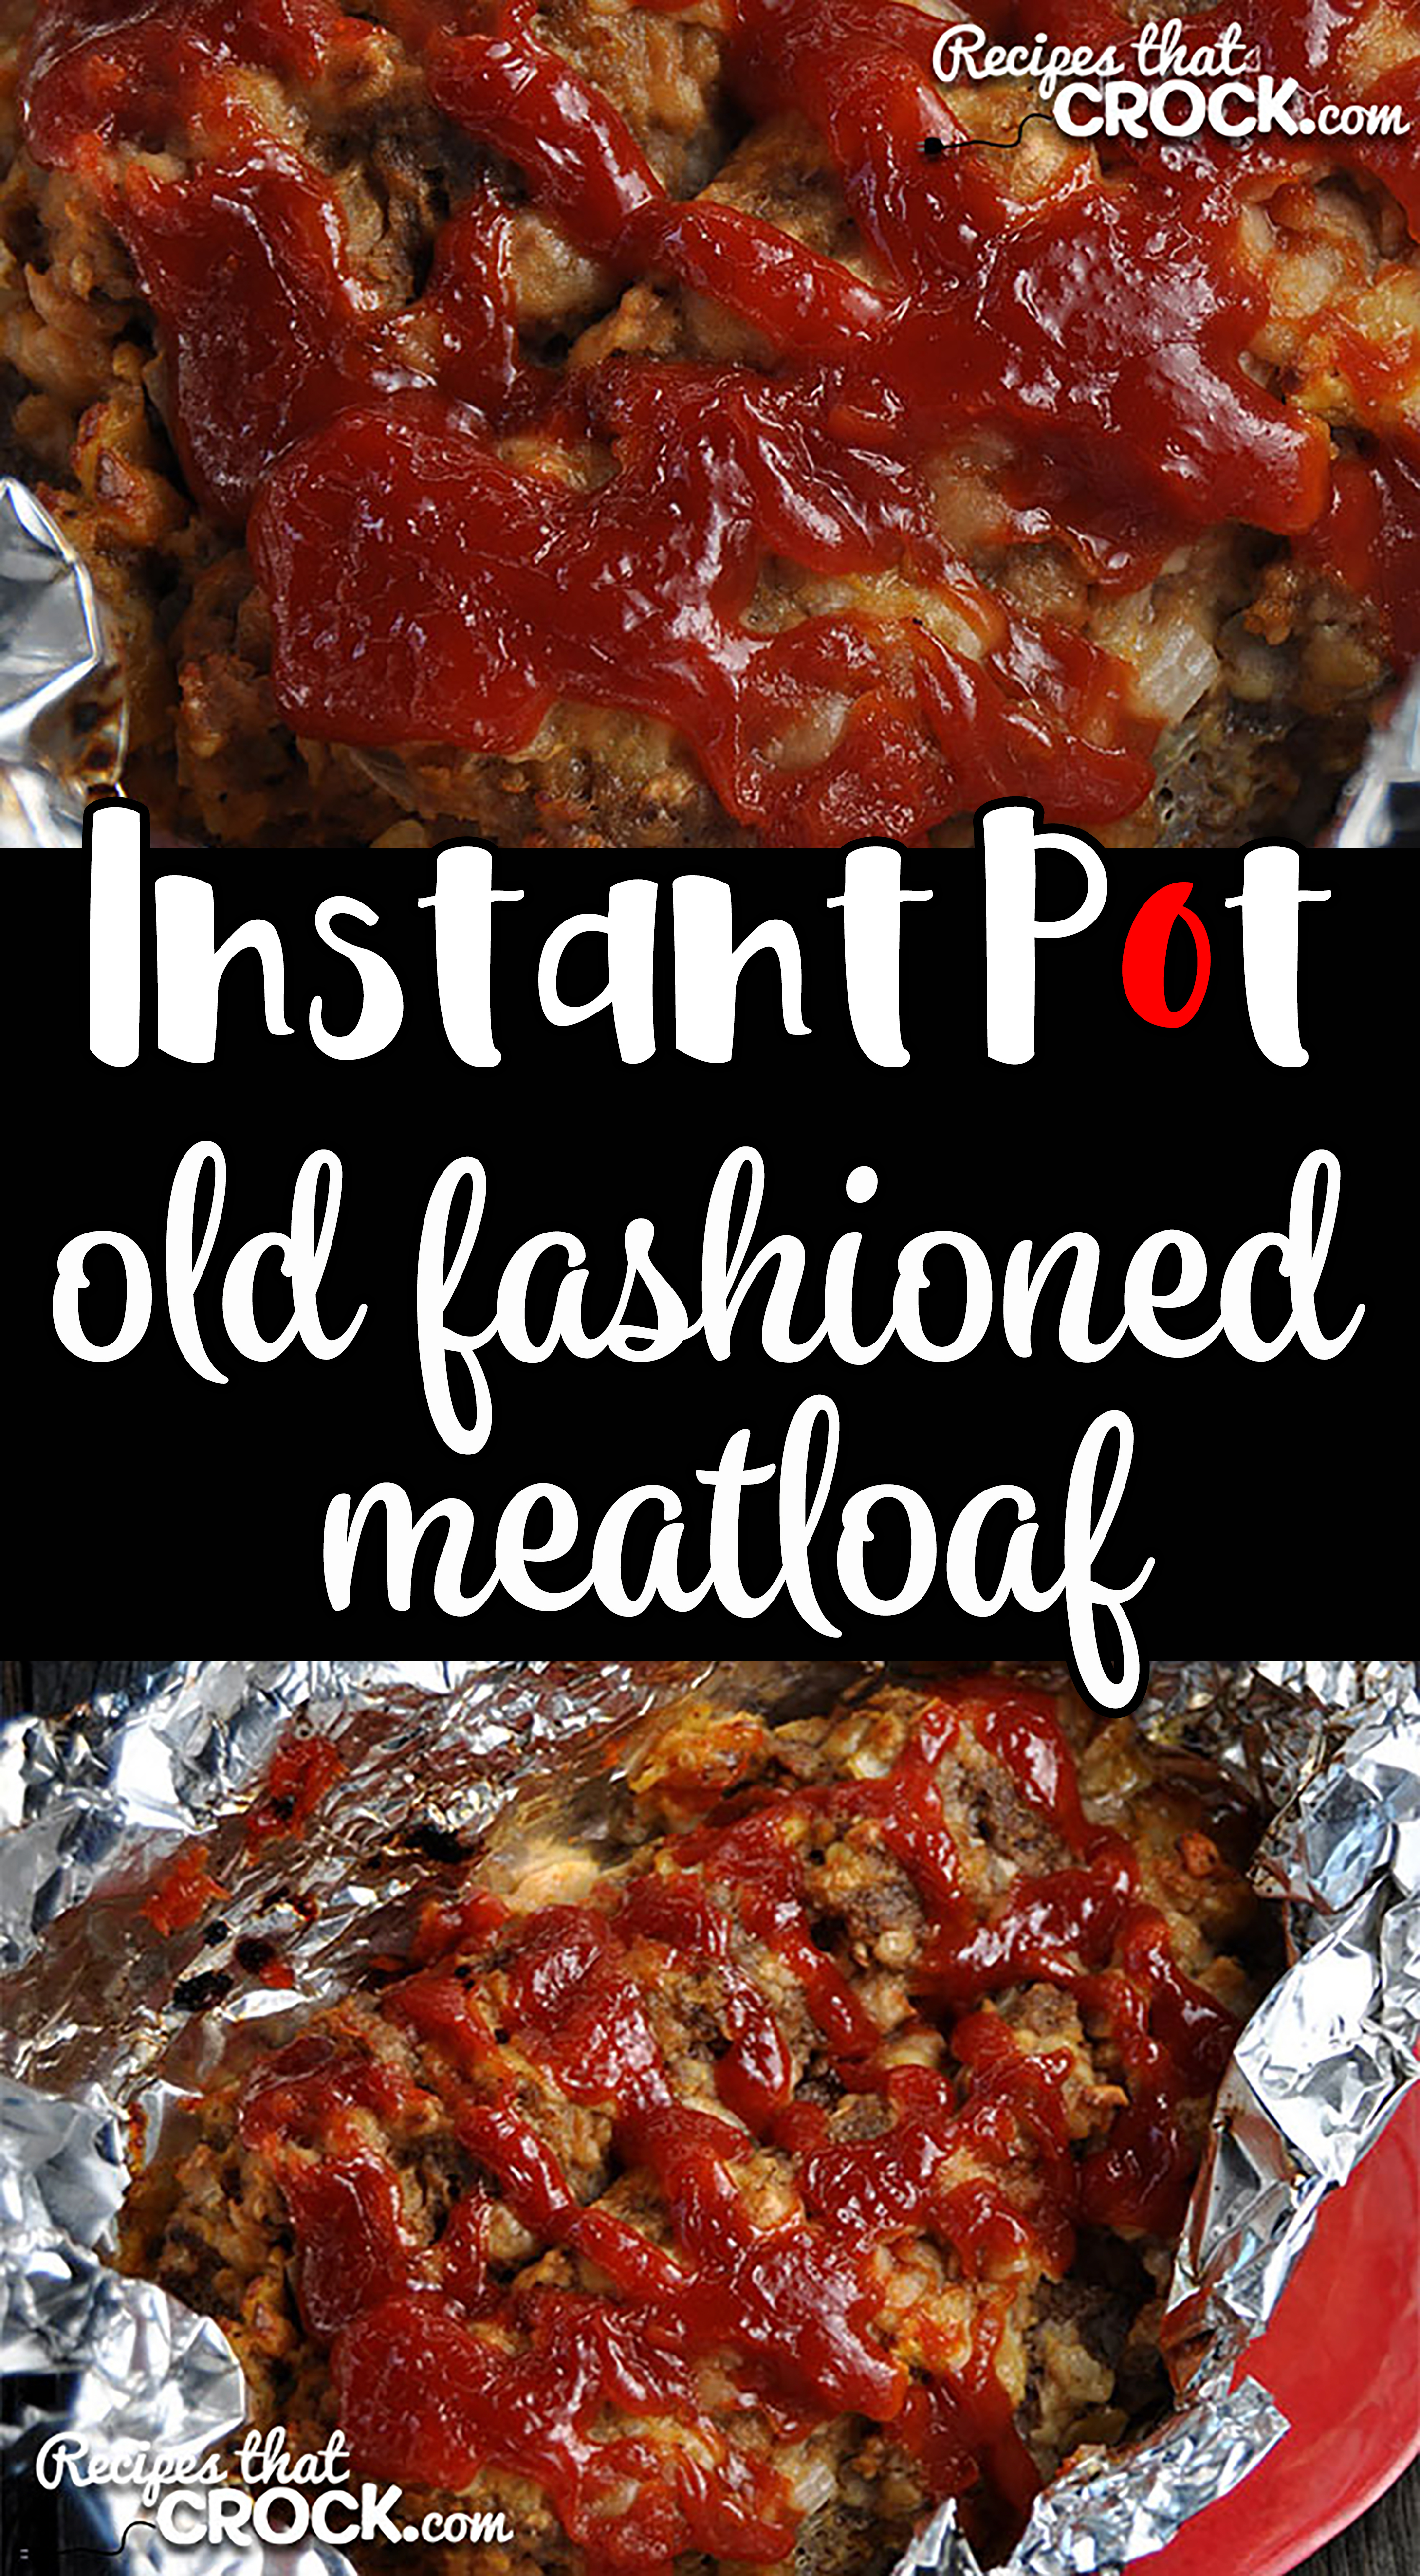 Need dinner in a hurry? This Instant Pot Old Fashioned Meatloaf takes our tried and true, super simple Old Fashioned Meatloaf recipe and turns it into an Instant Pot recipe! via @recipescrock